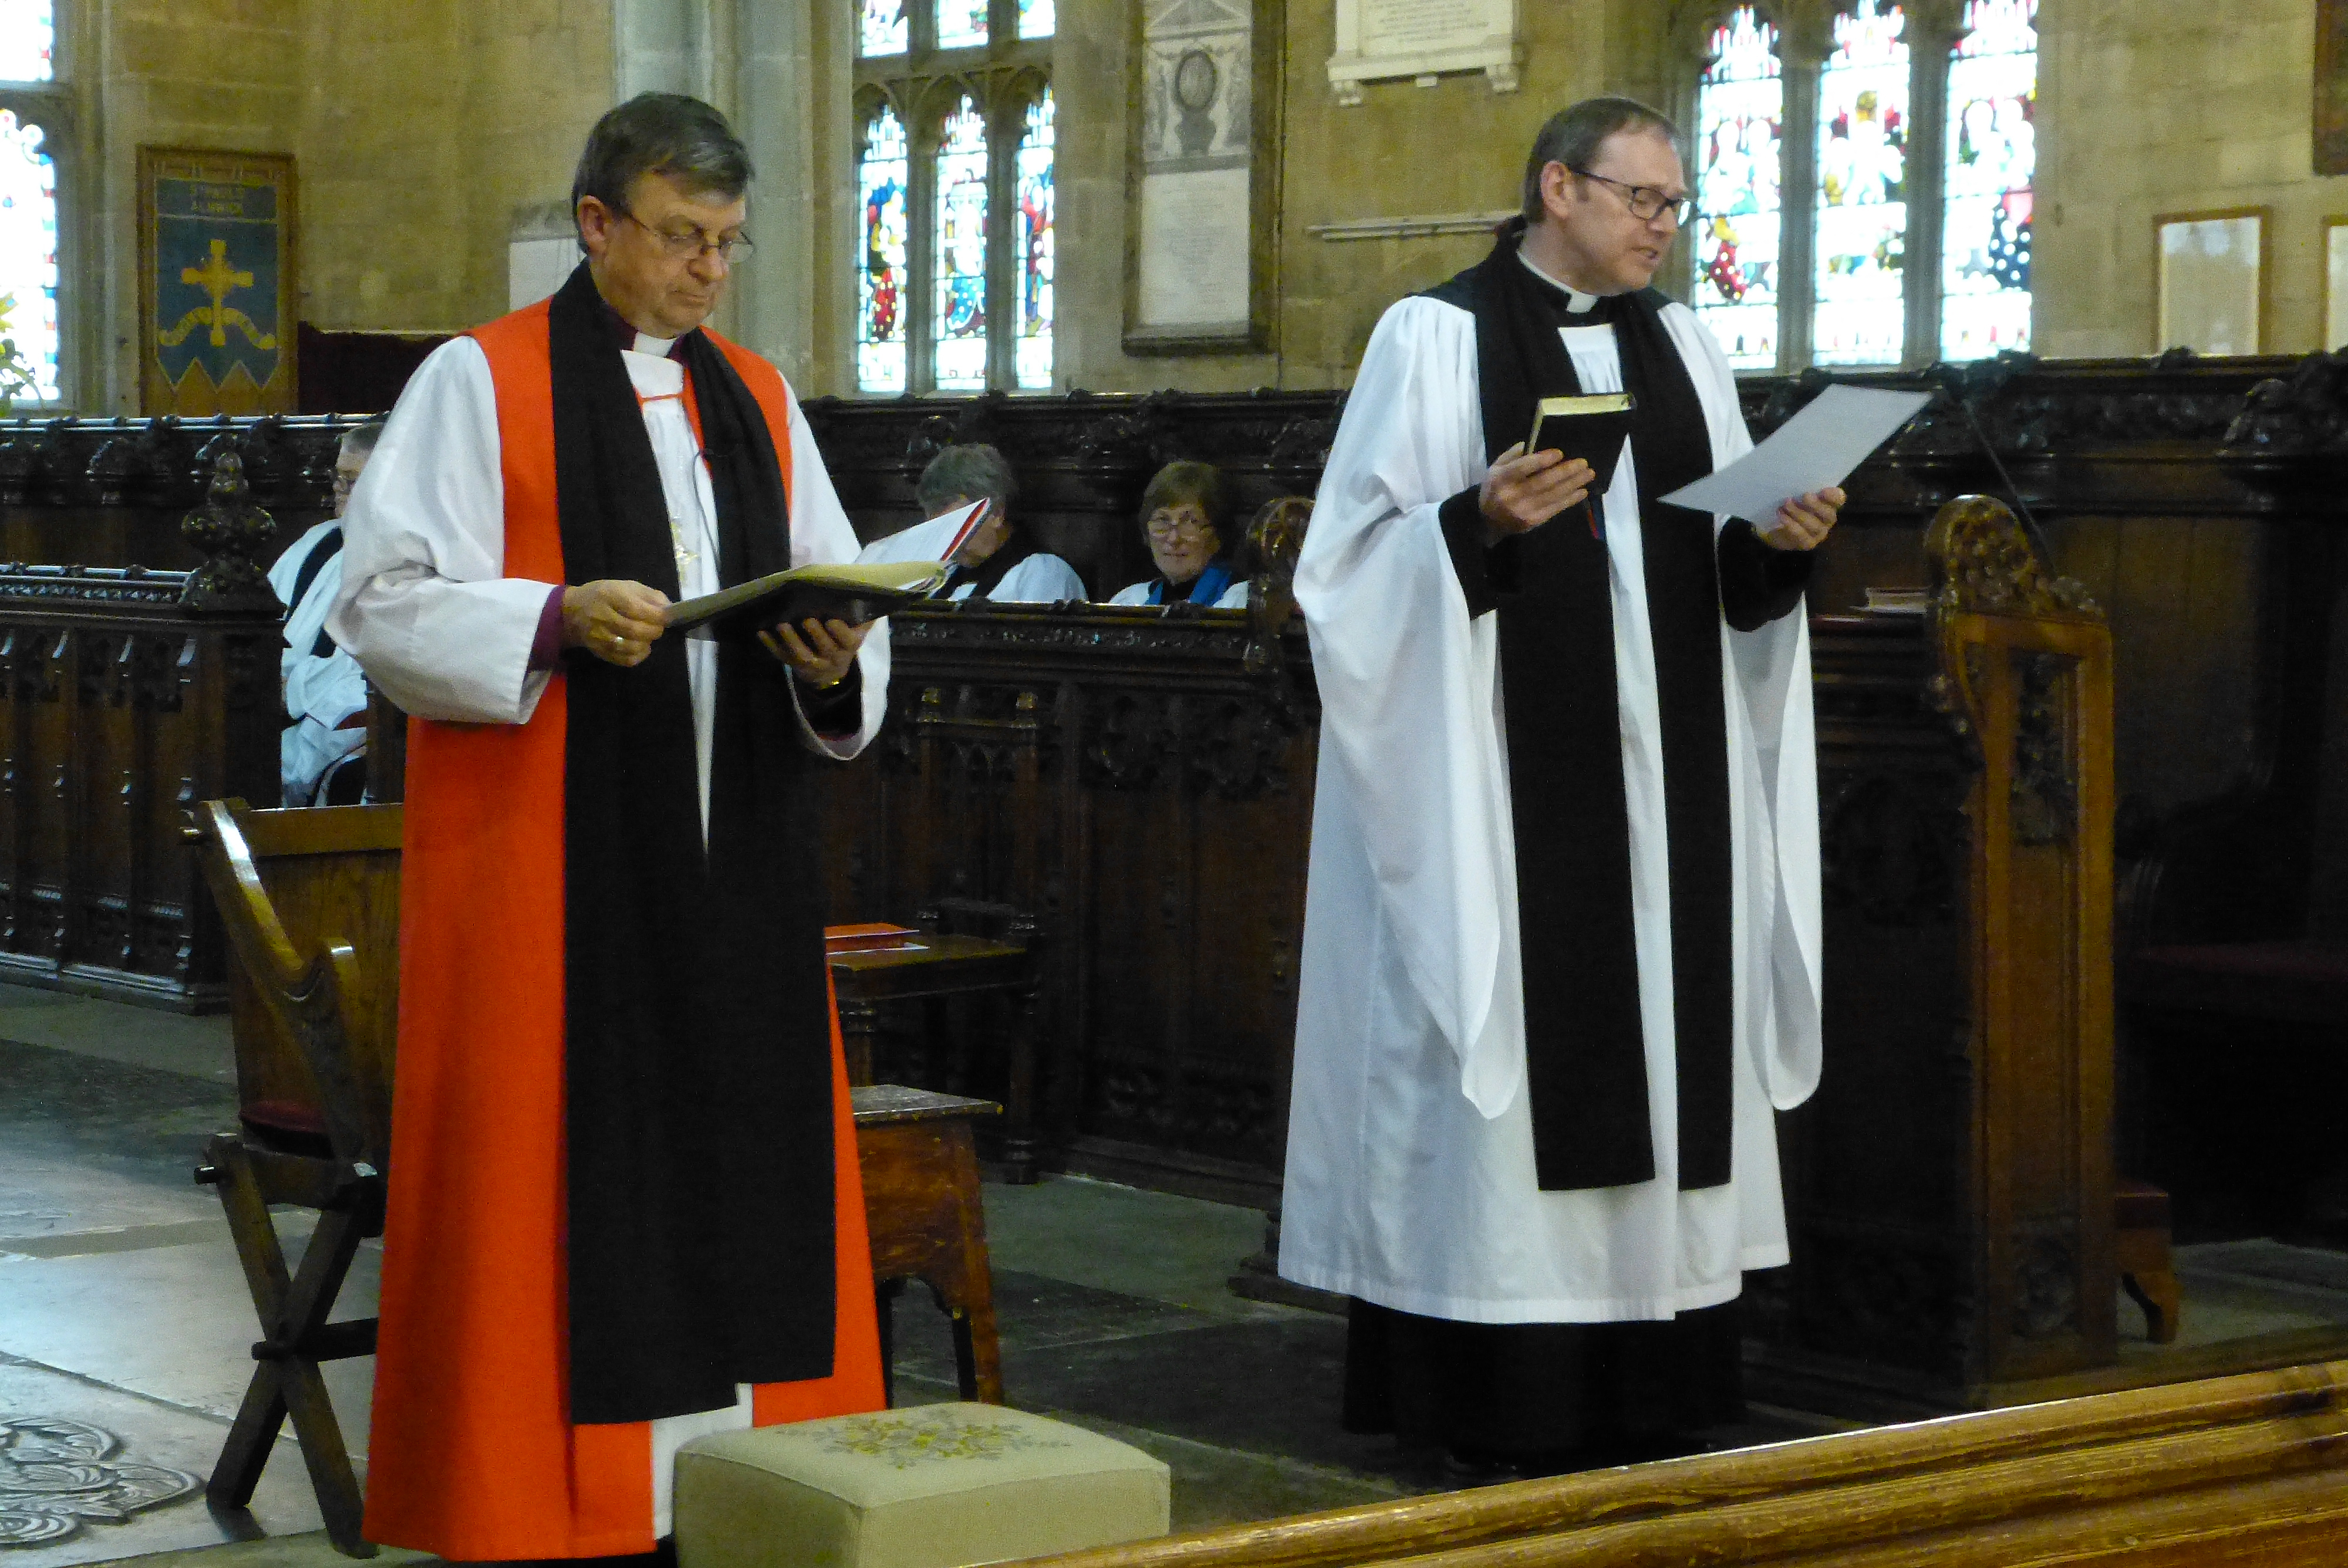 The Right Rev'd Frank White and Rev'd Canon Paul Scott during the swearing of oaths